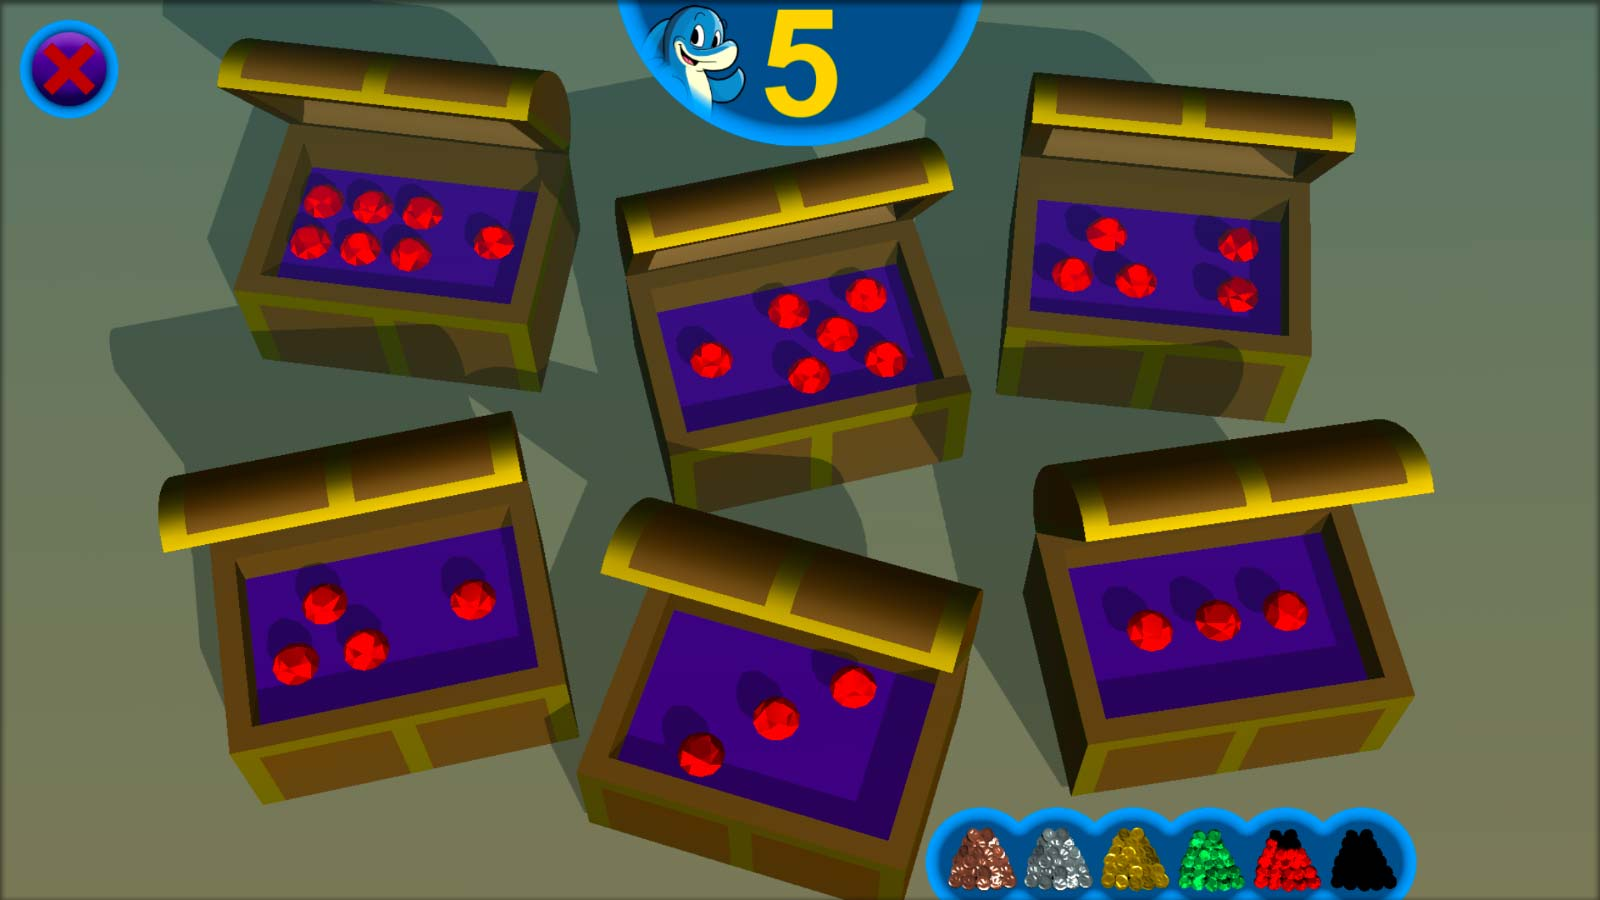 Educational mobile game to teach early math skills: treasure chests with countable patterns of gems